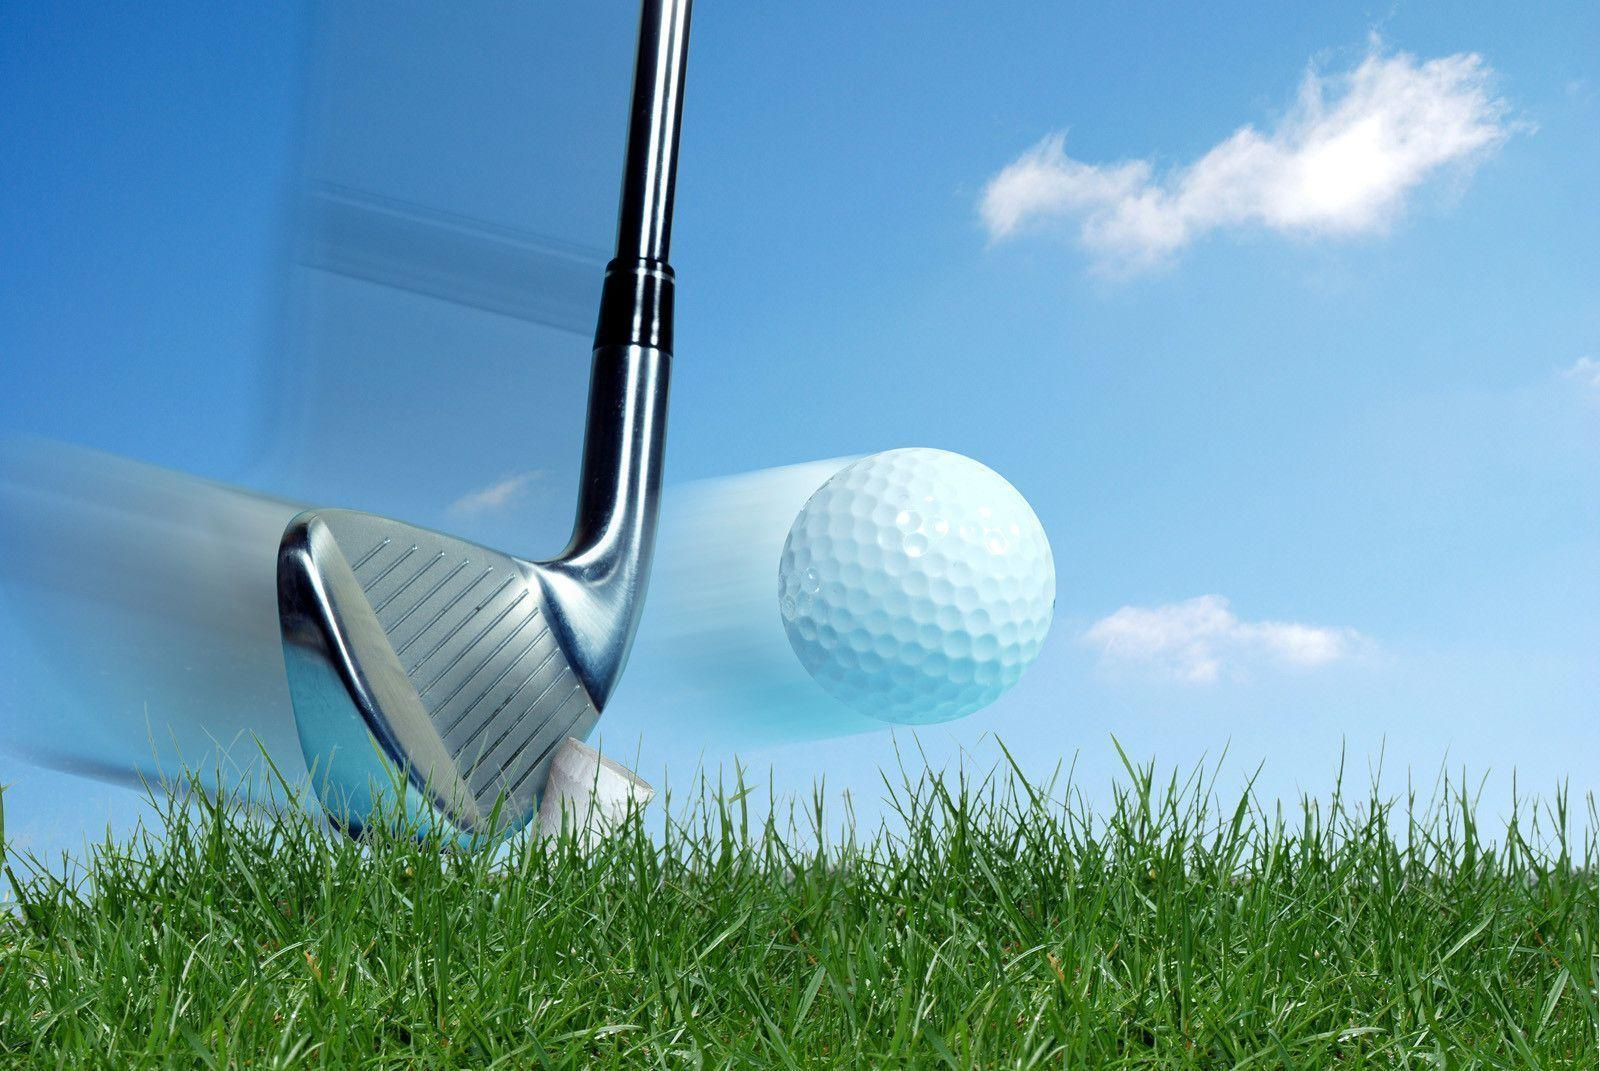 Free Golf Wallpapers - Wallpaper Cave